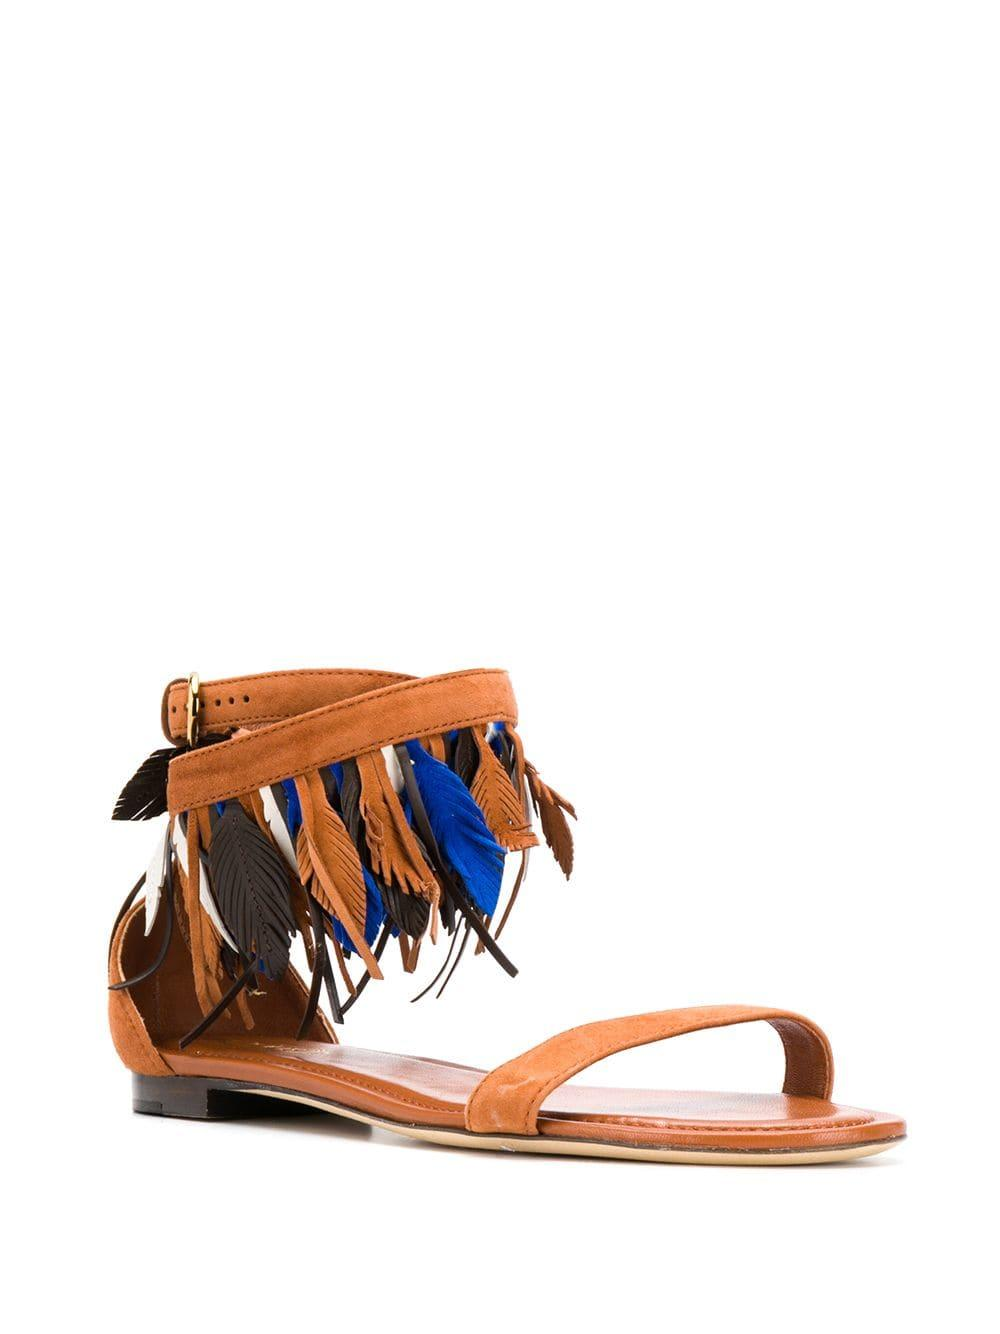 2bf906796 Tod s Feather Boho Sandals in Brown - Lyst